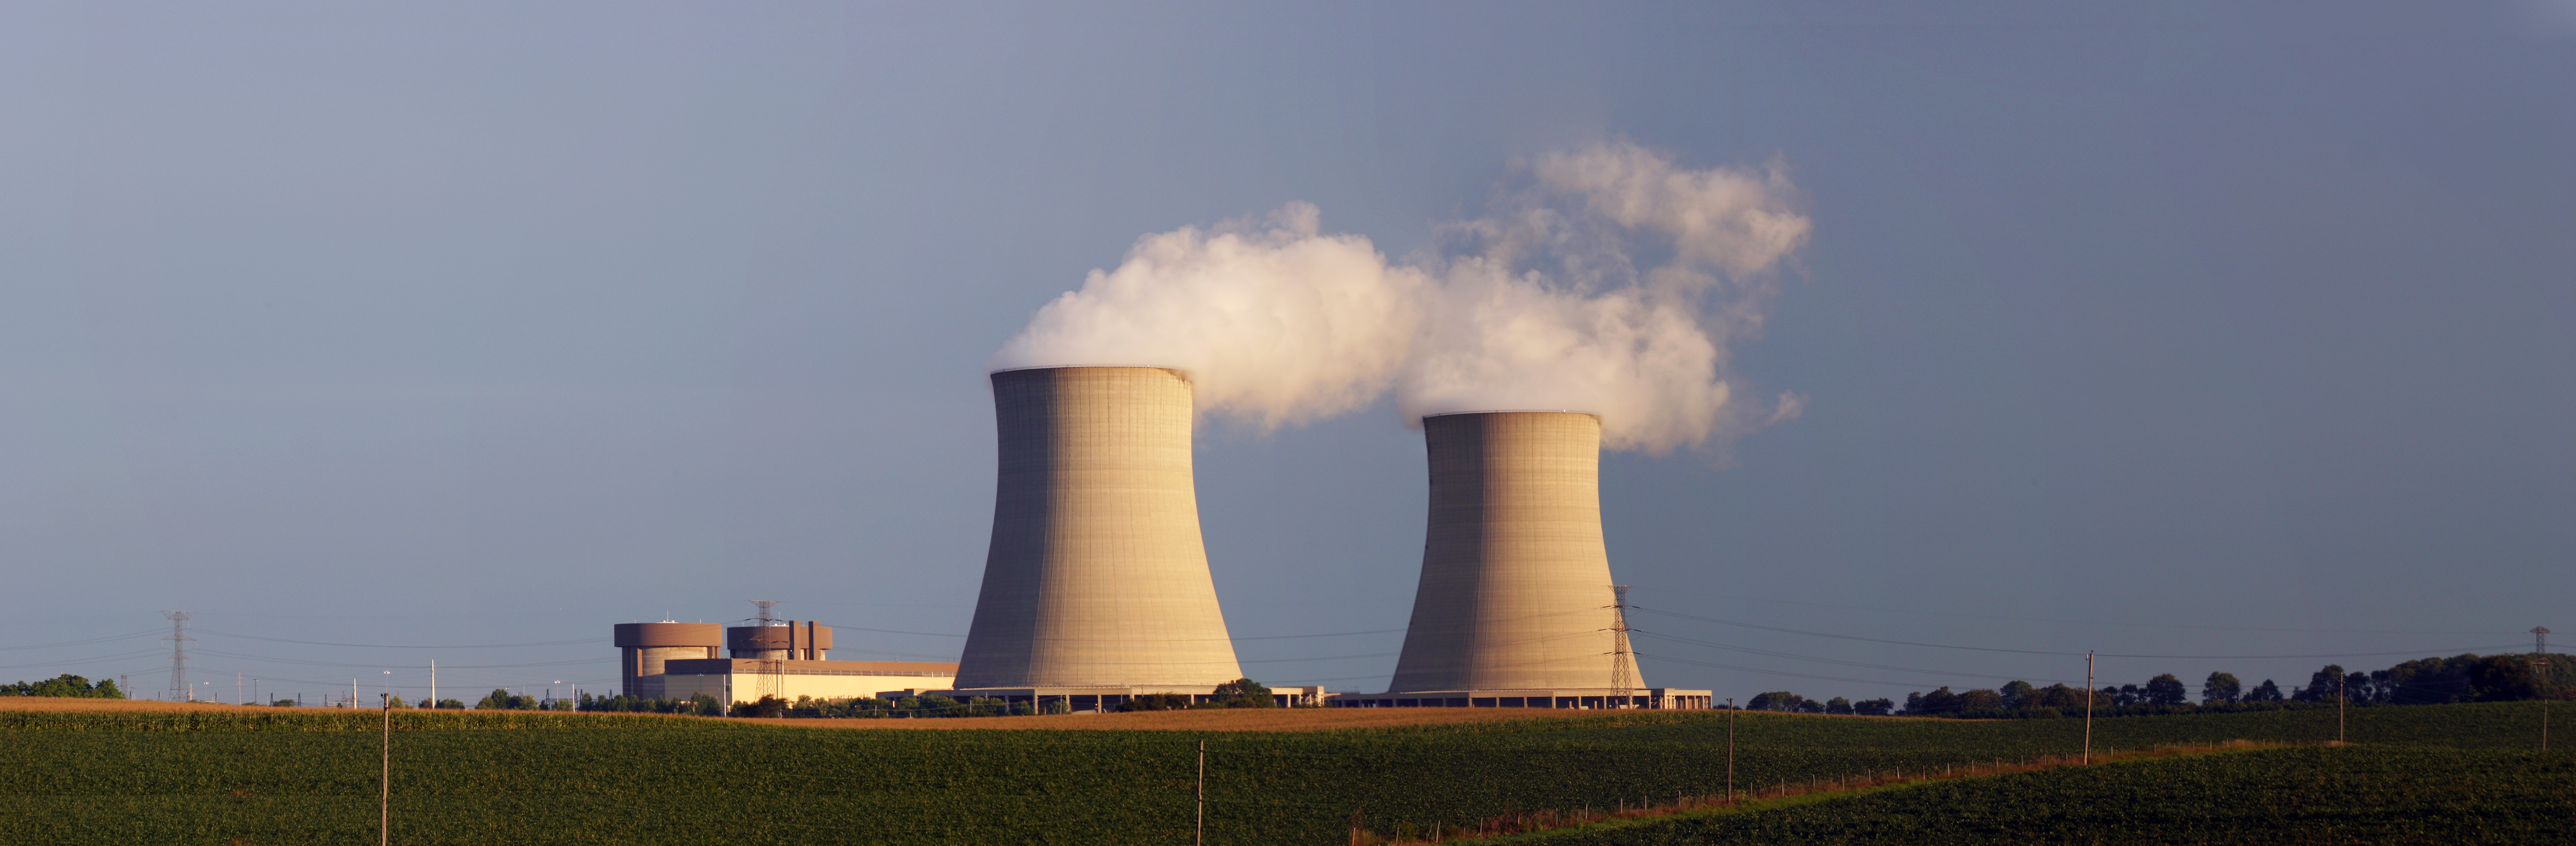 Will exelon shutter quad cities clinton or byron npps in the land of